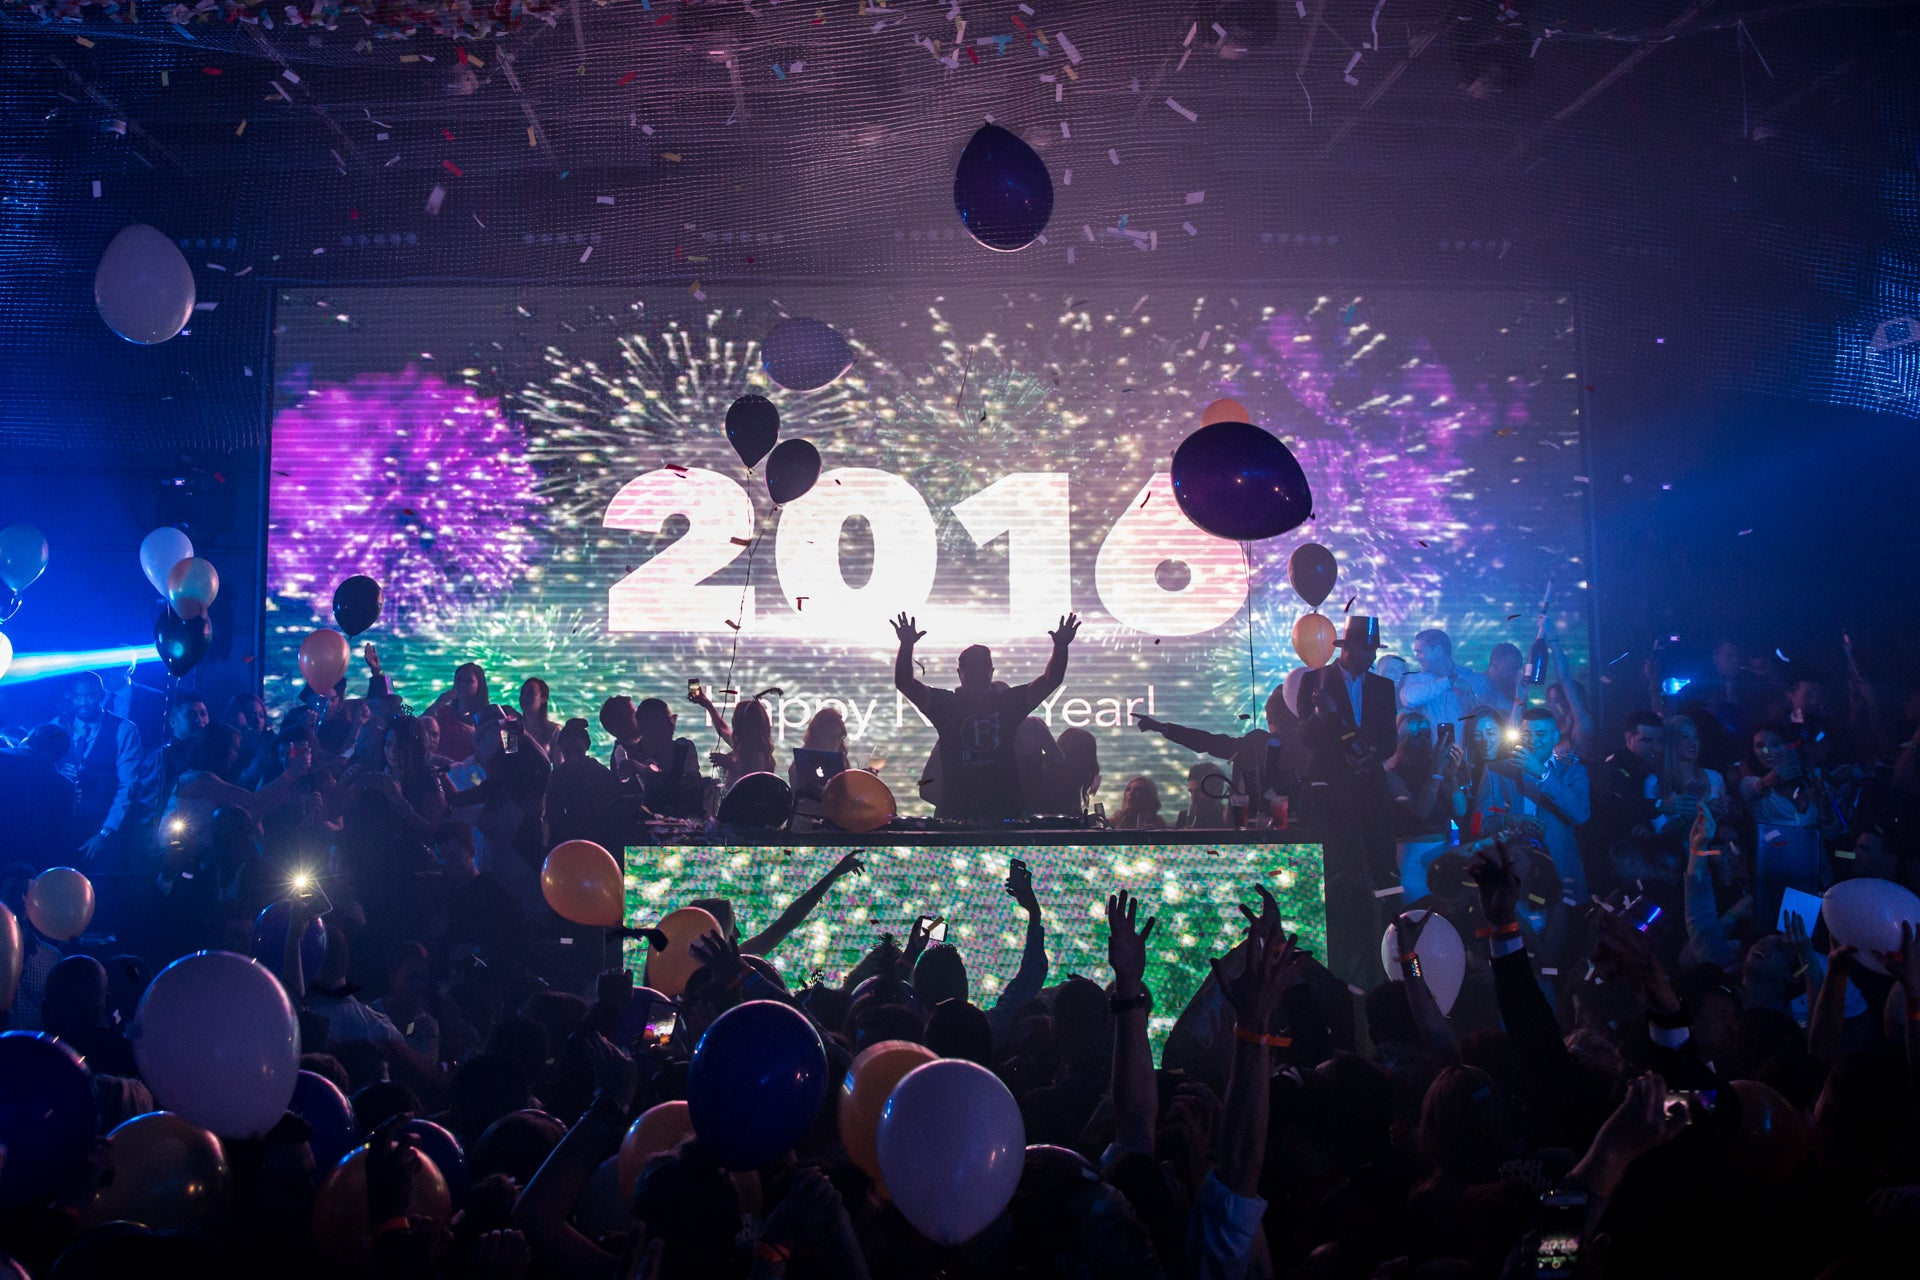 New Years Eve 2016 at Parq Restaurant & Nightclub